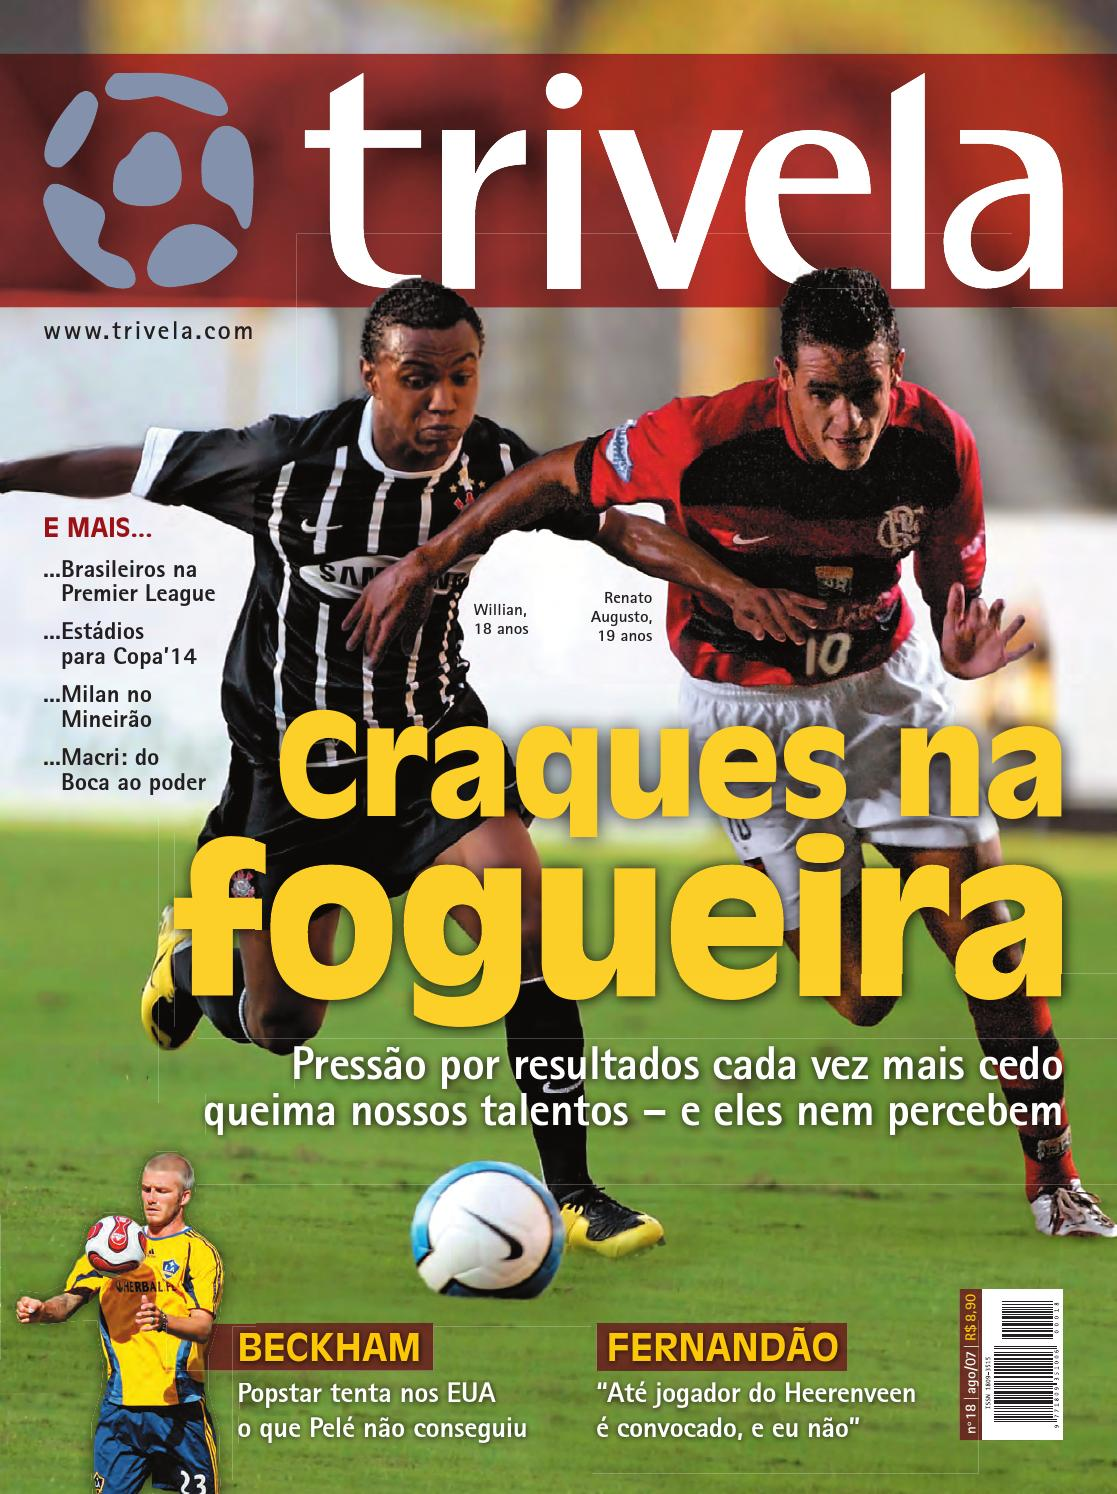 Trivela 18 (ago 07) by °F451 - issuu 98f94038e4f8a